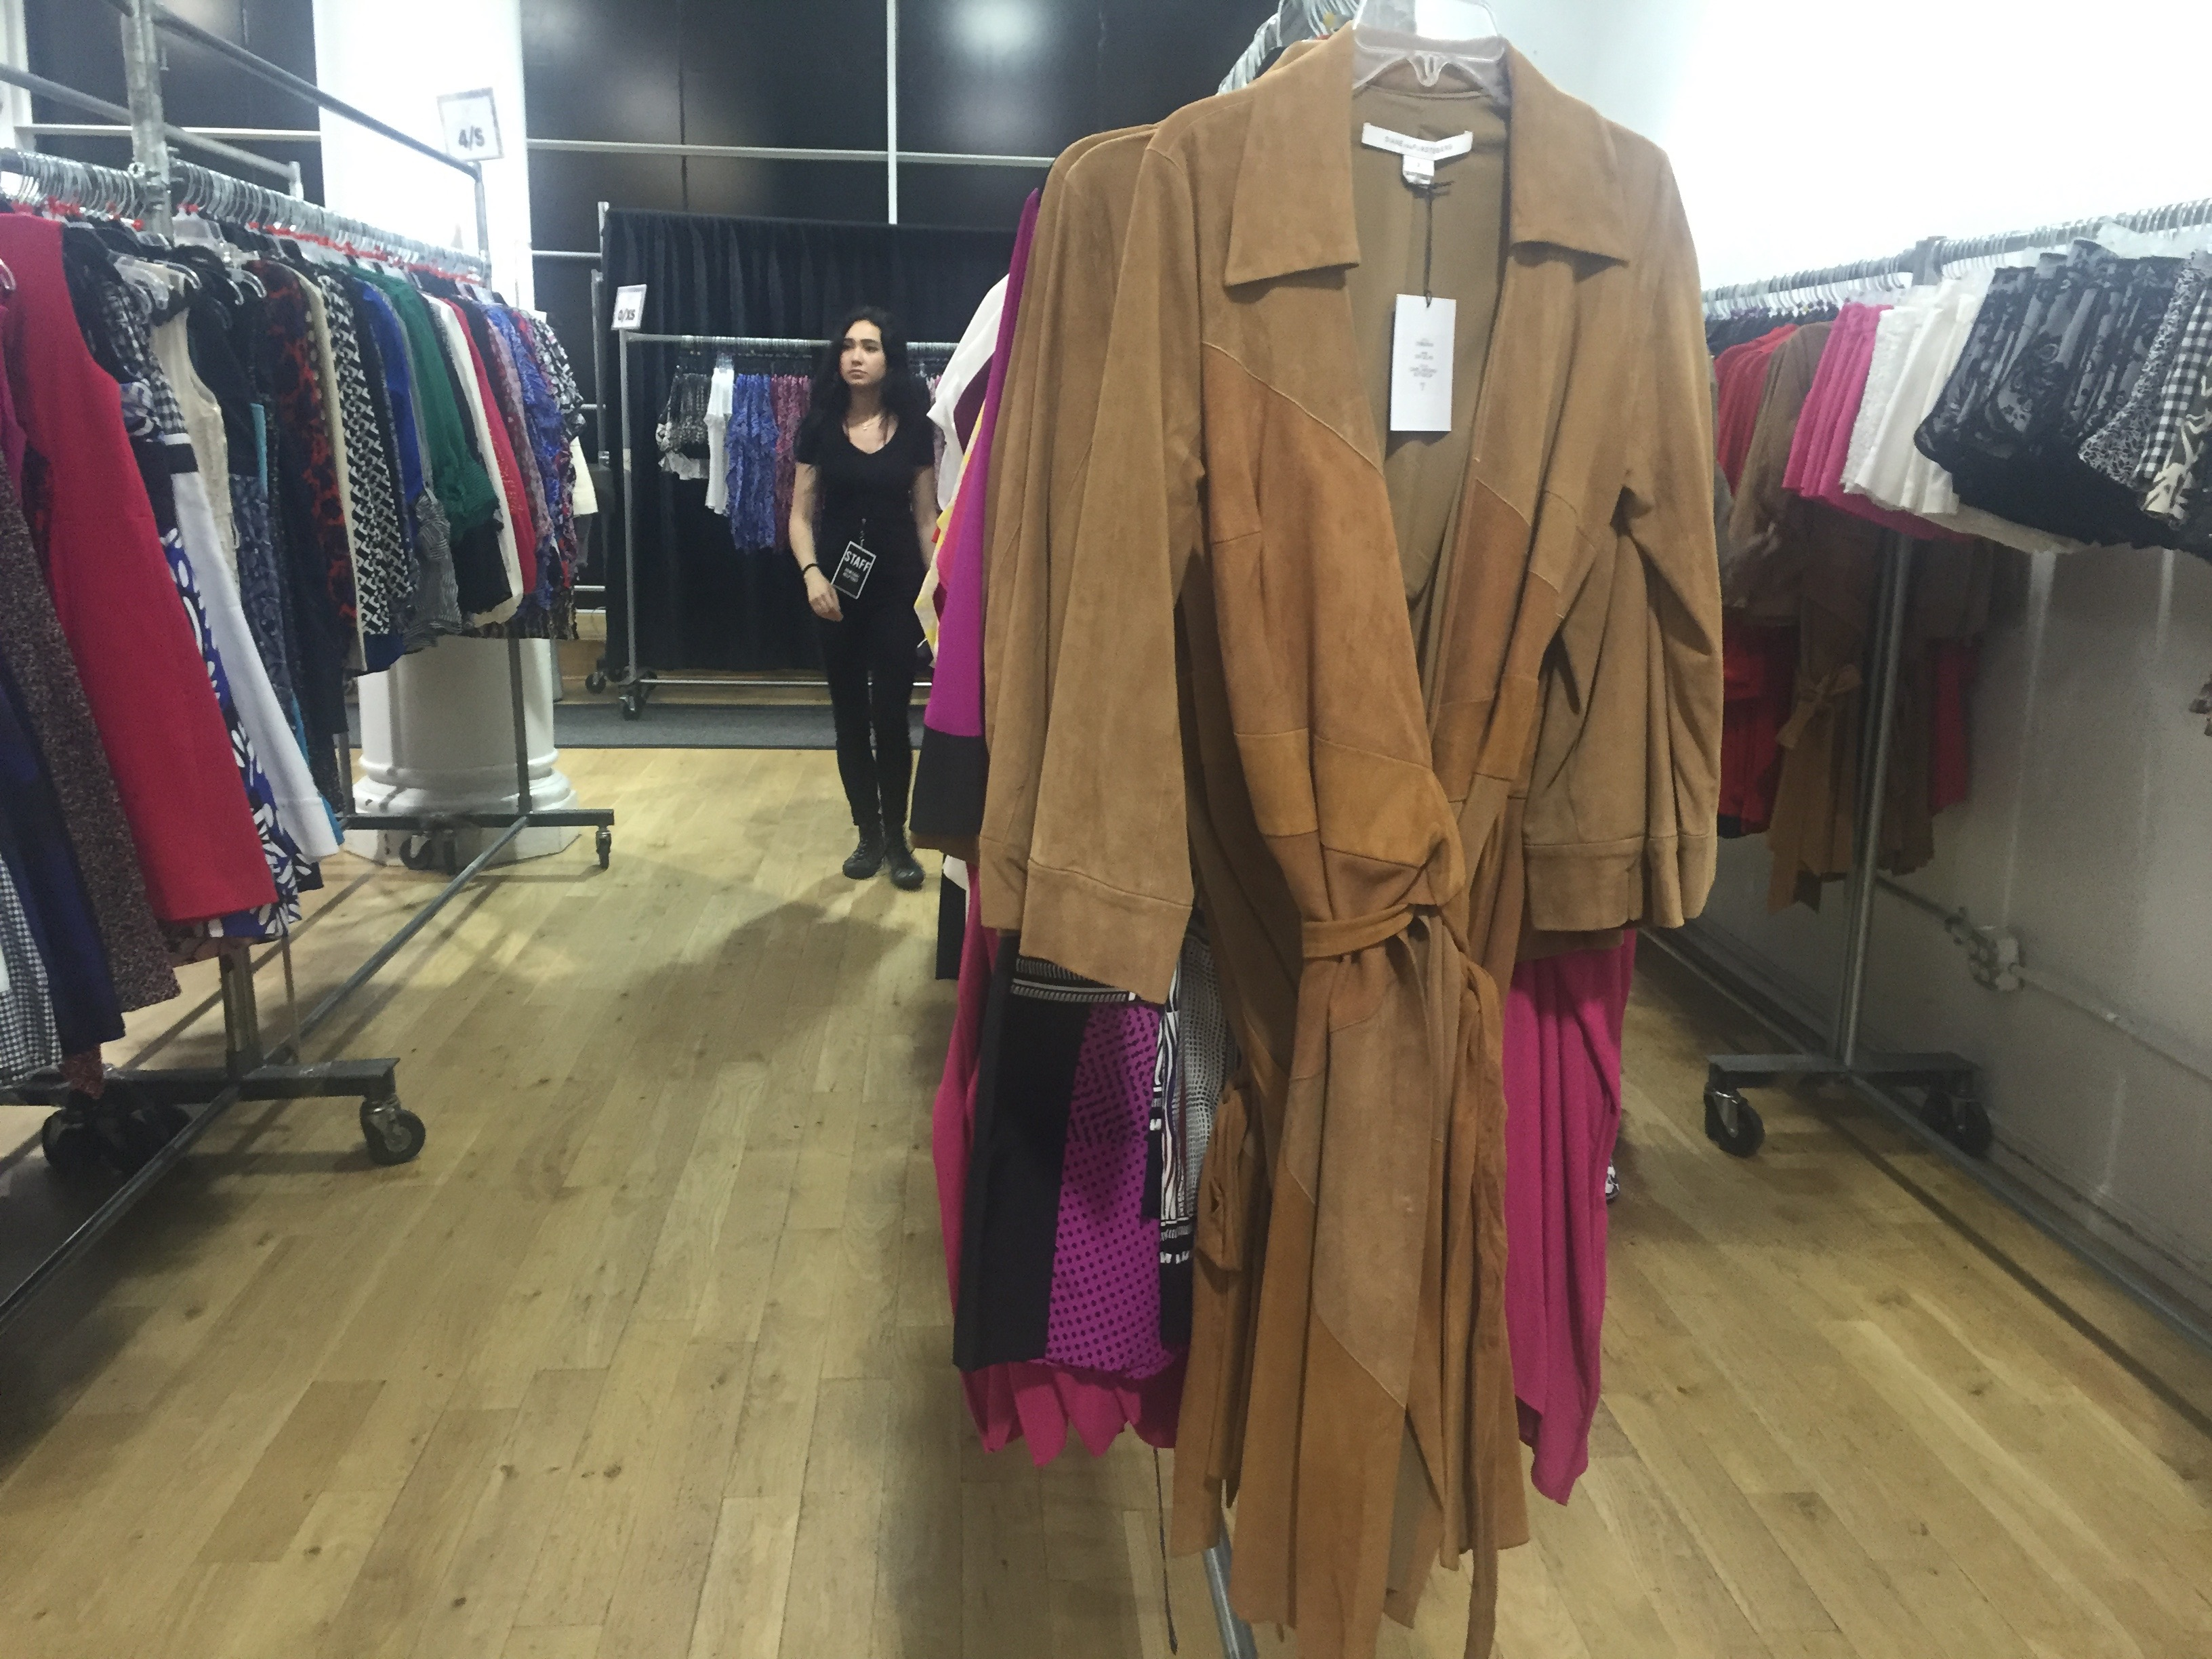 4f0a8567bd The 10 Best Items to Shop at This Week s DVF Sample Sale - Racked NY